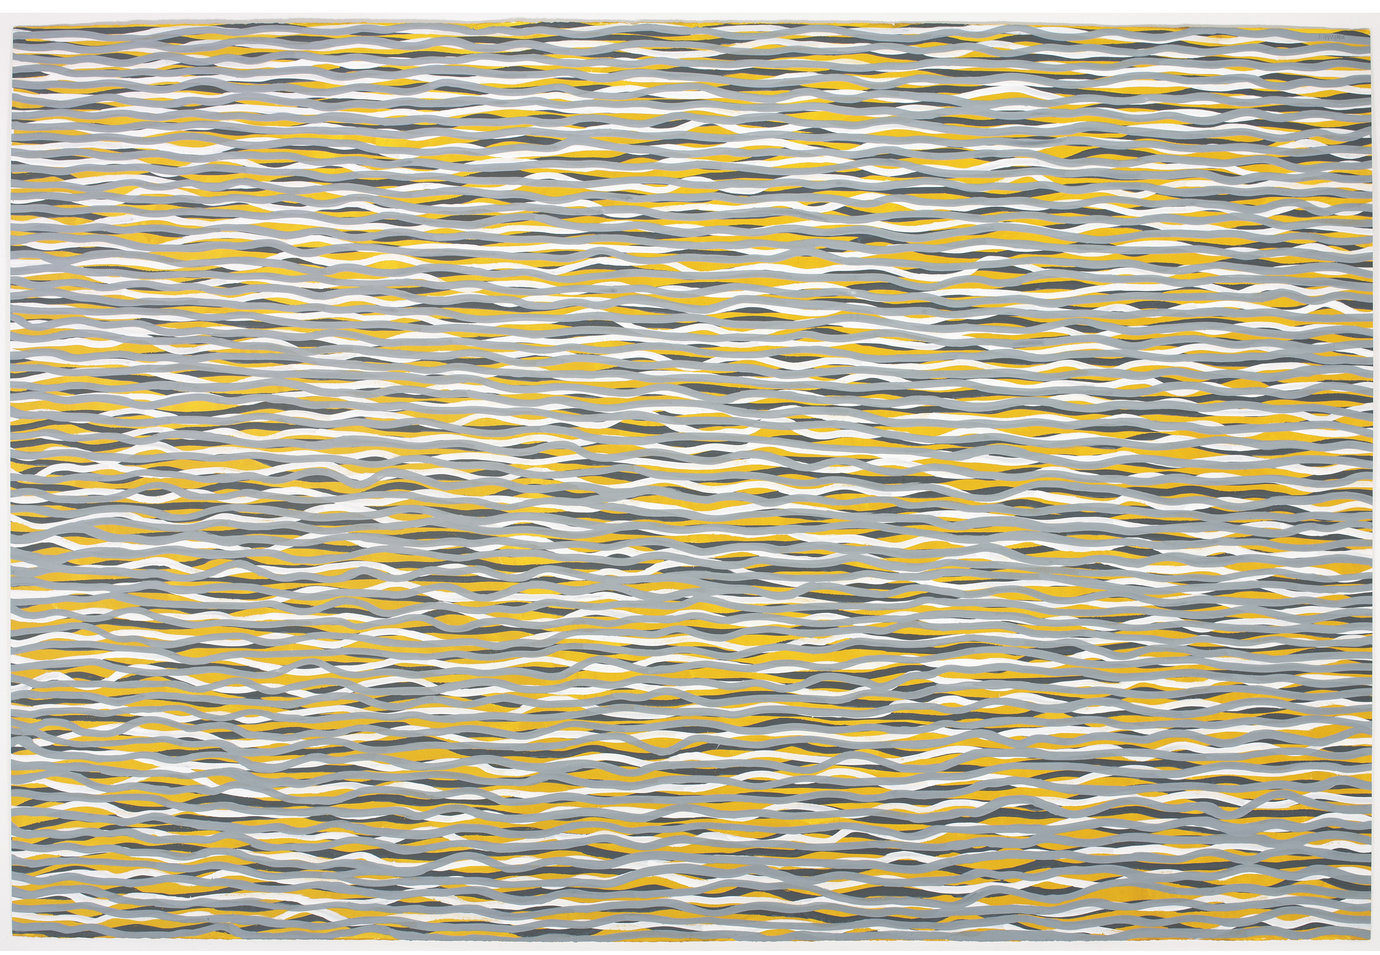 ", 2005. Gouache on paper, 60"" x 89-3/4"" (152.4 cm x 228 cm)."